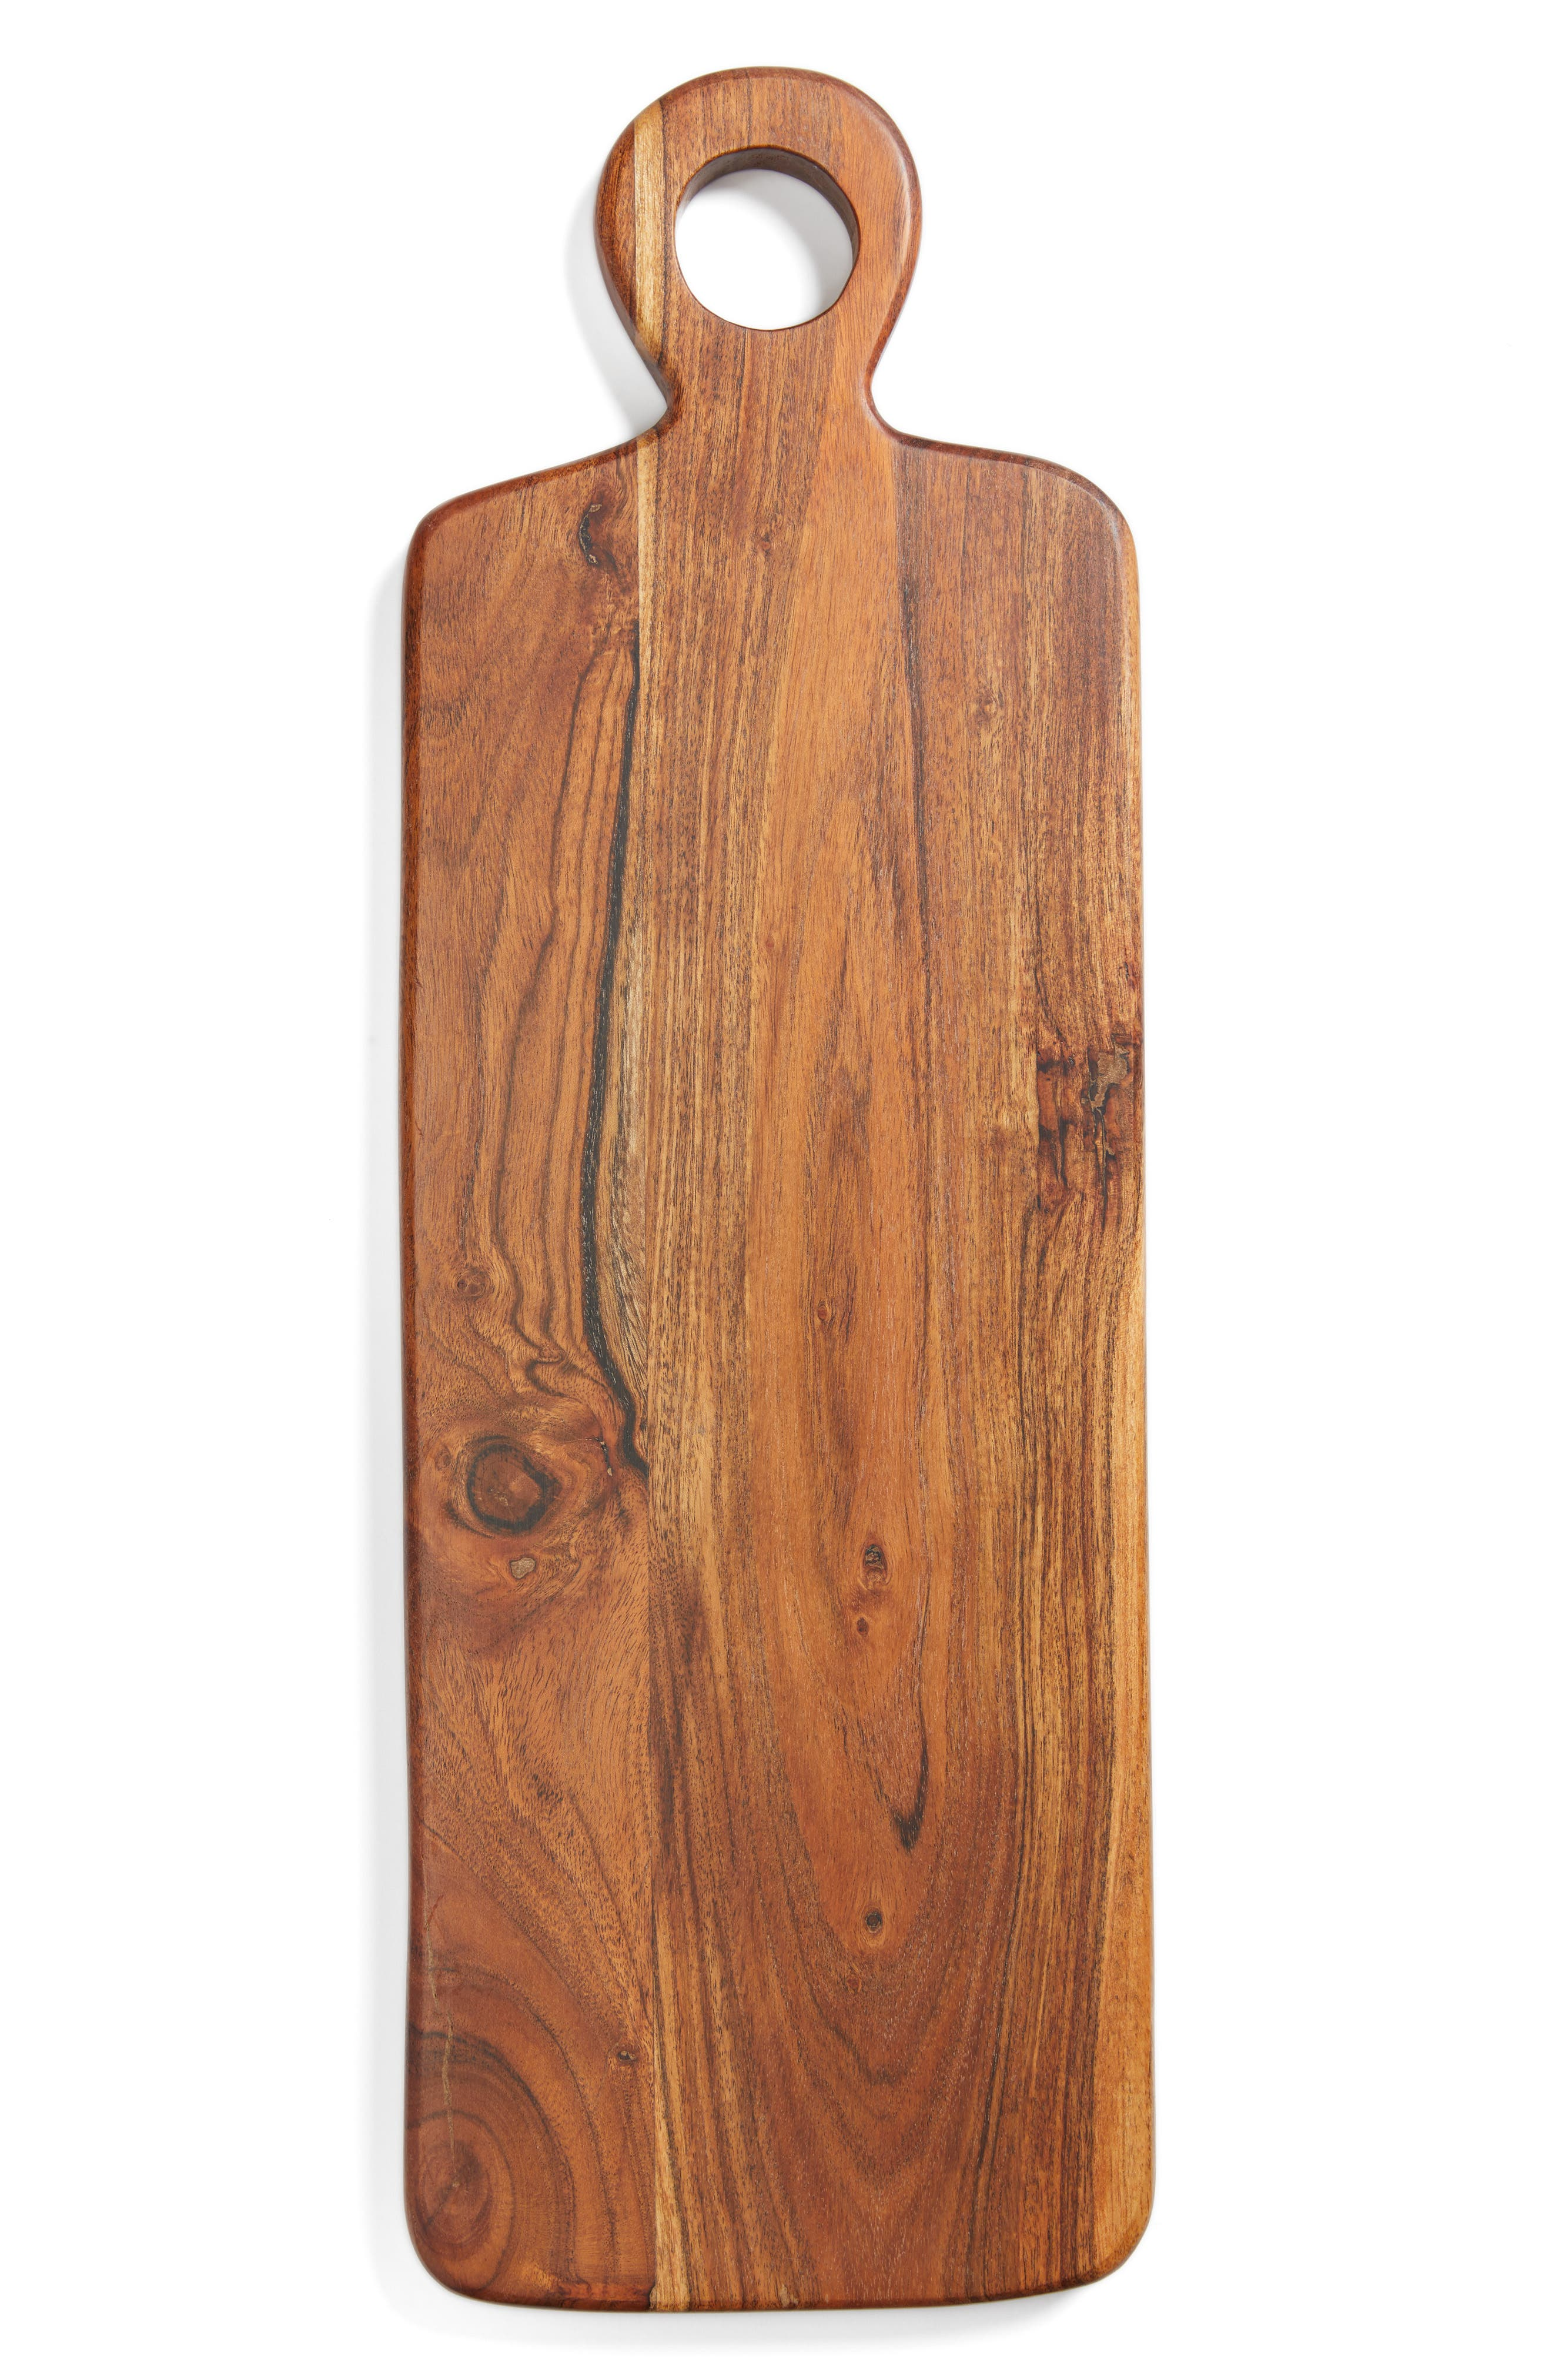 Acacia Wood Cheese Board,                             Main thumbnail 1, color,                             200